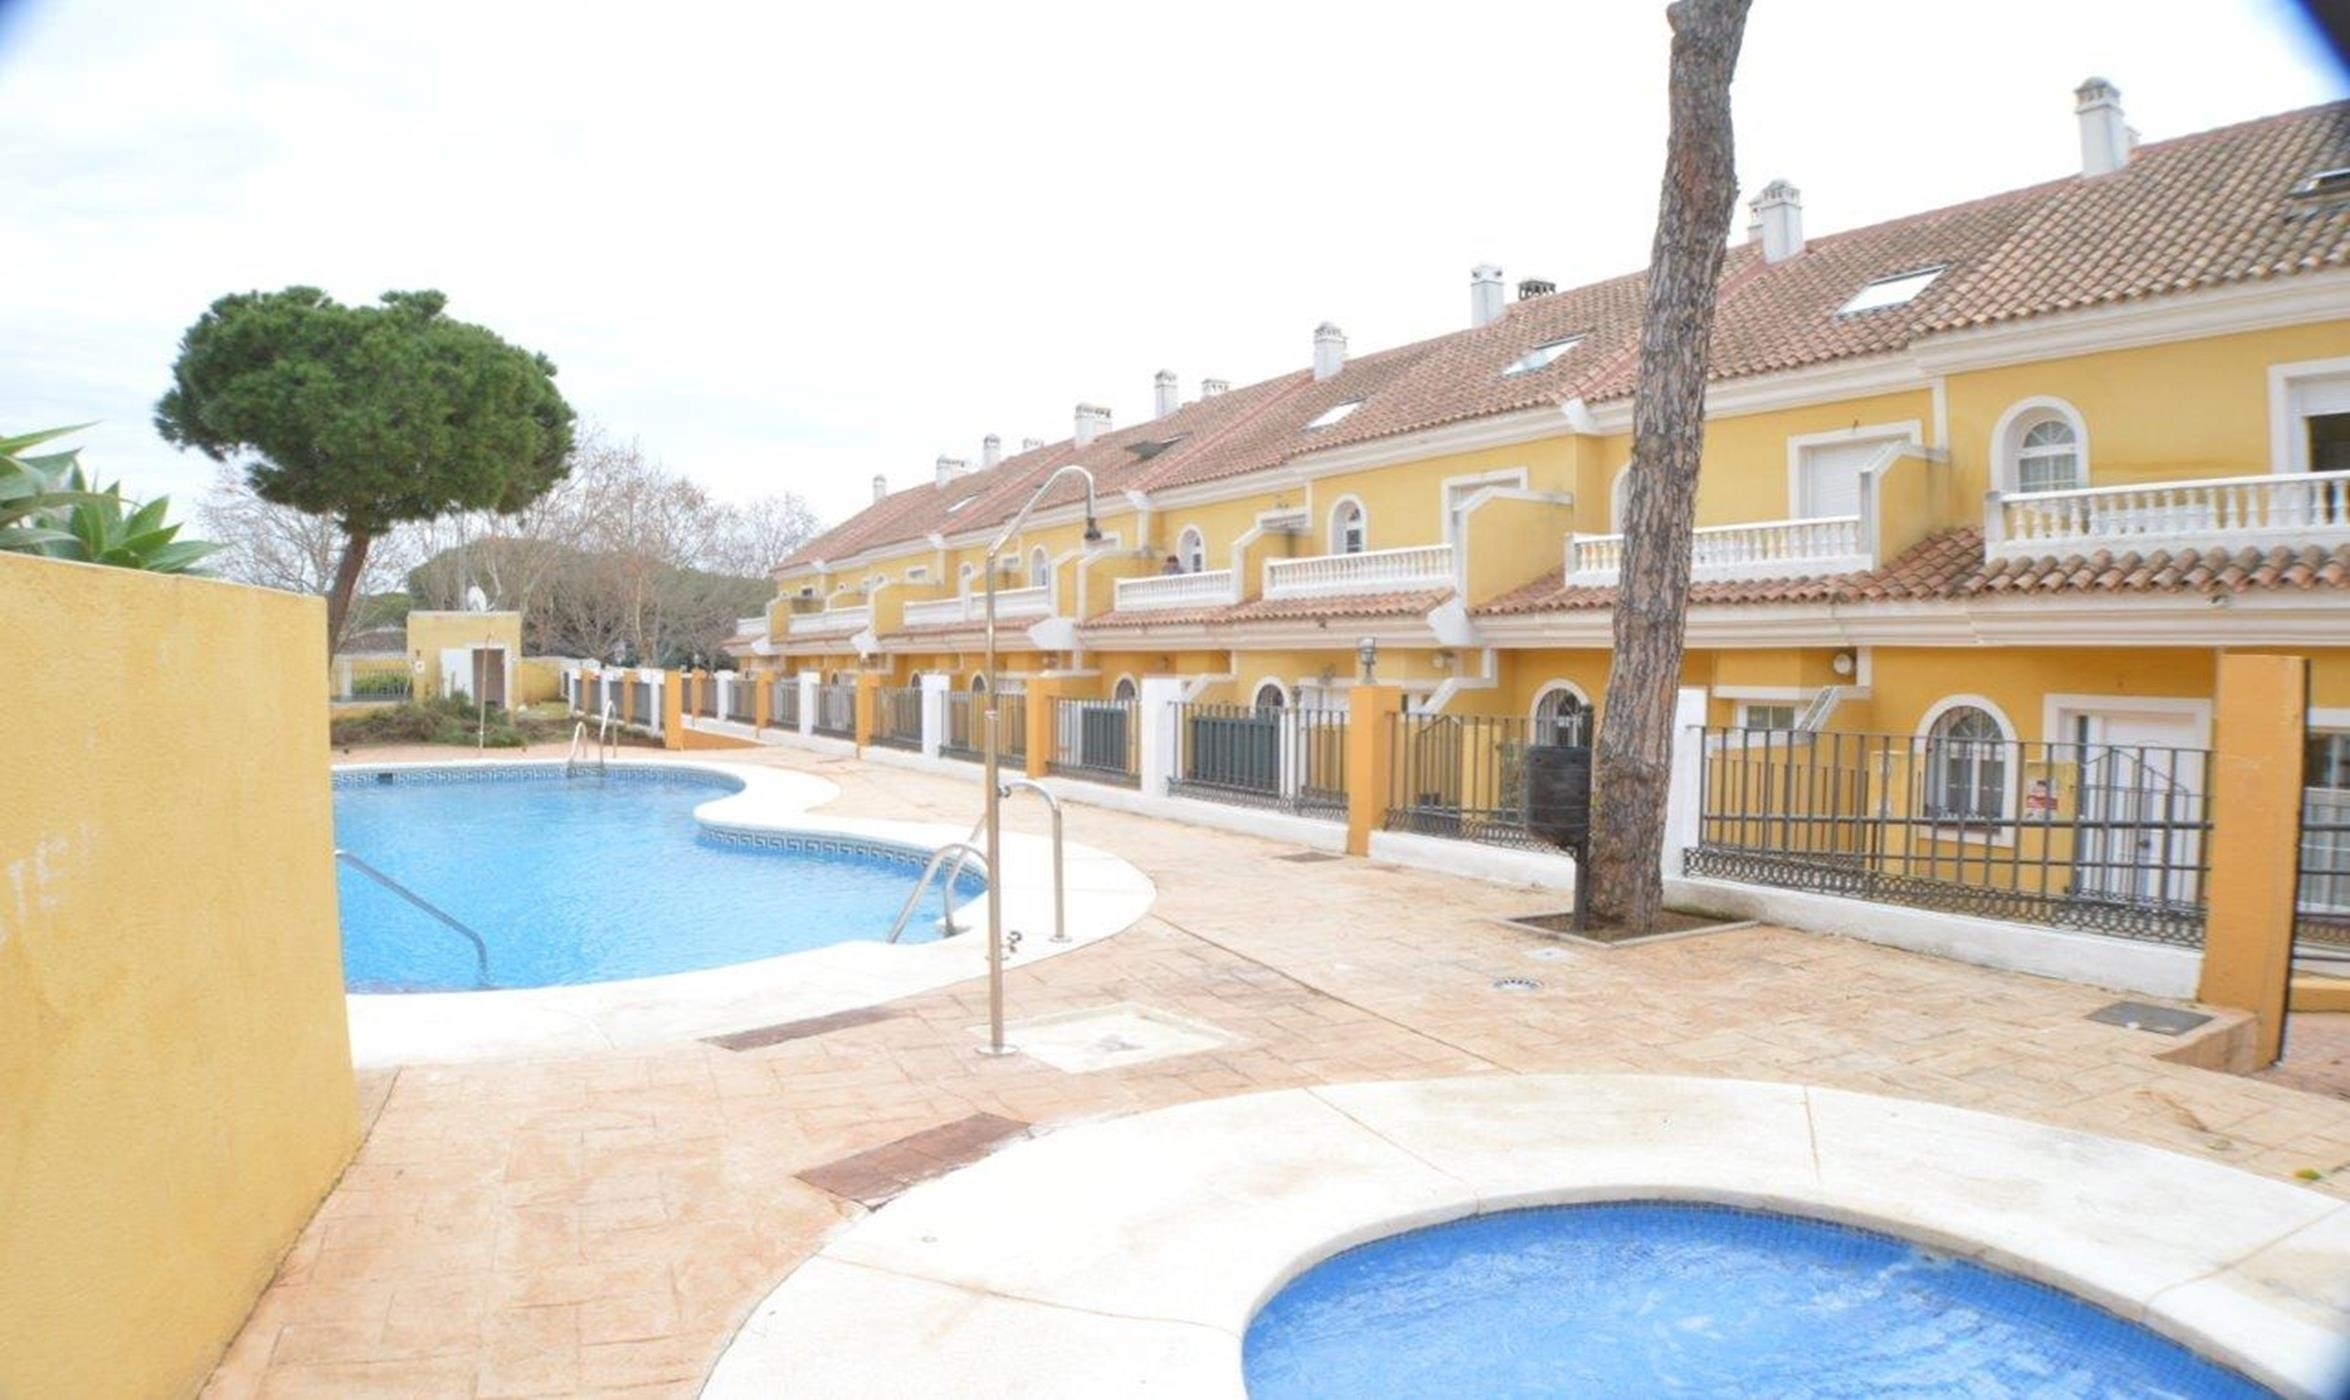 Exclusive and spacious Townhouse in Calahonda